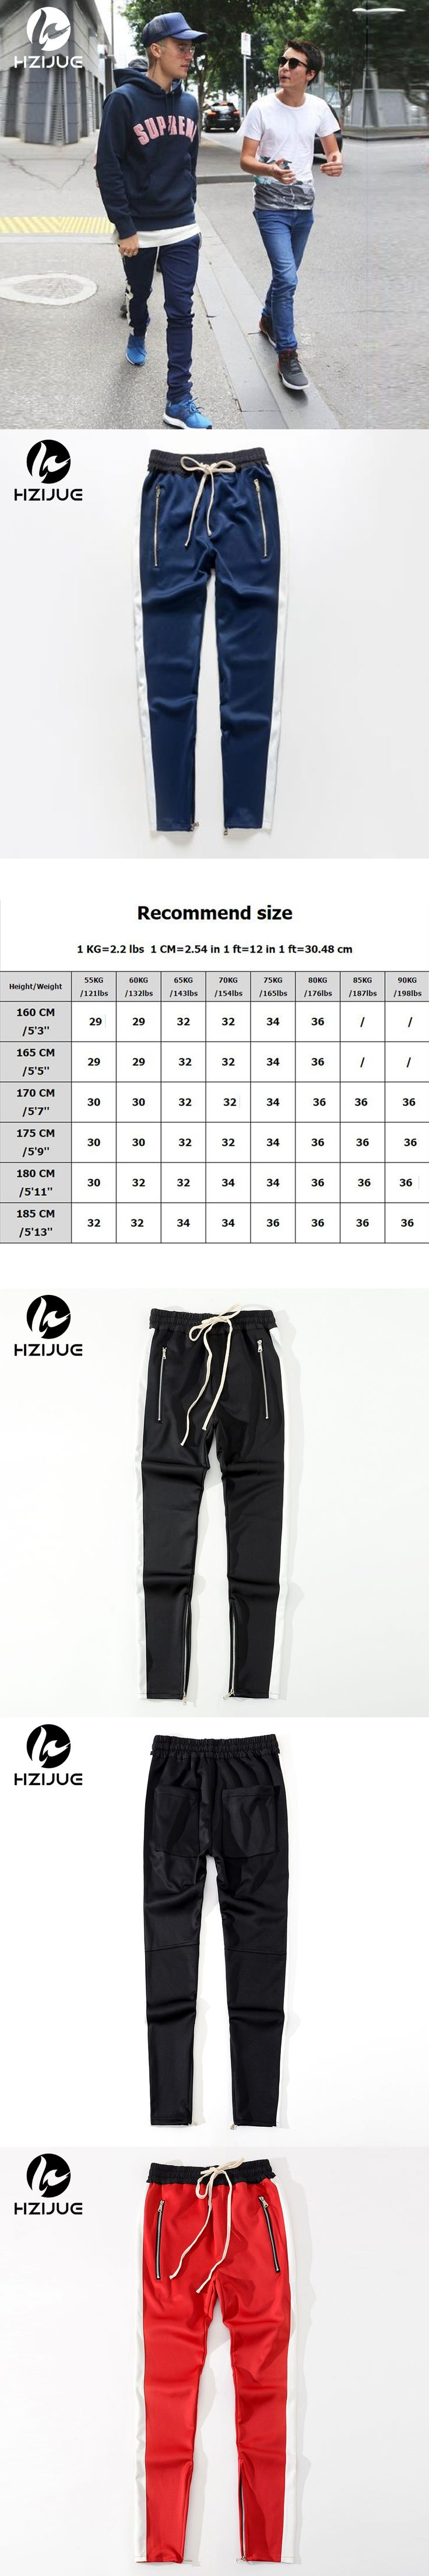 HZIJUE 2017 men pants Striped Kint Waistband Track Pants High Quality Zipped Pockets Ankle Slim Fit Joggers for me 3 colors